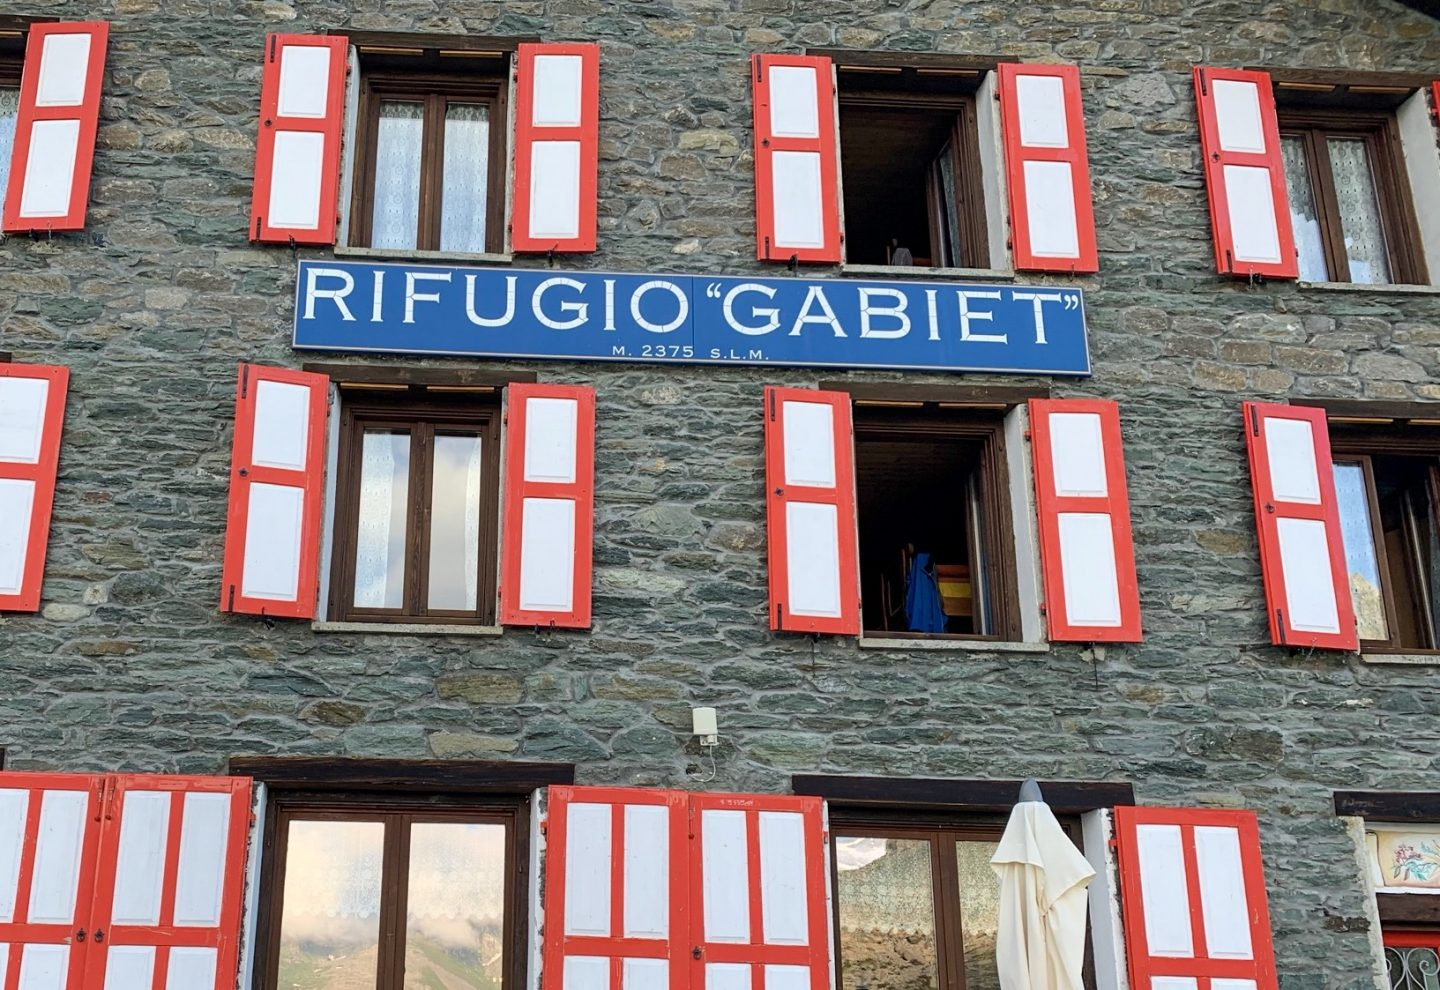 Rifugio Gabiet mountain hut